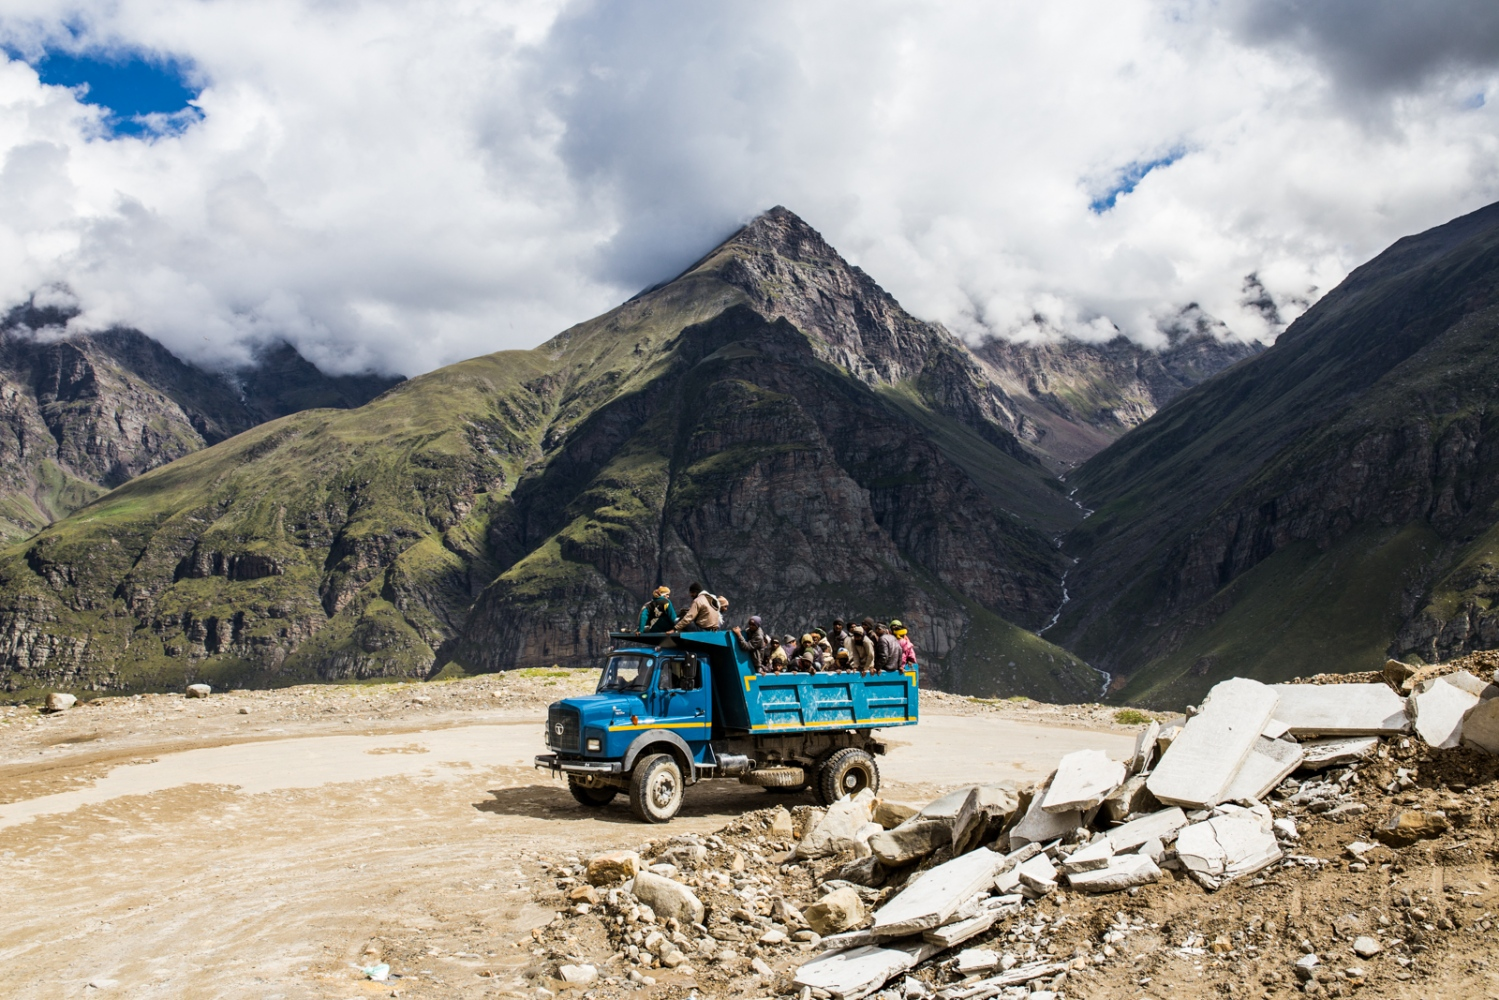 Diesel powered truck transports migrant workers on the ever expanding Himalayan roads of India. Unfiltered and old diesel trucks release large amounts of black carbon, a dark particle that absorbs sunlight and heats the surrounding area. Black carbon has been shown to exacerbate the impacts of climate change in the Himalayas, which is warming faster than any other place on the planet, excluding the Arctic.